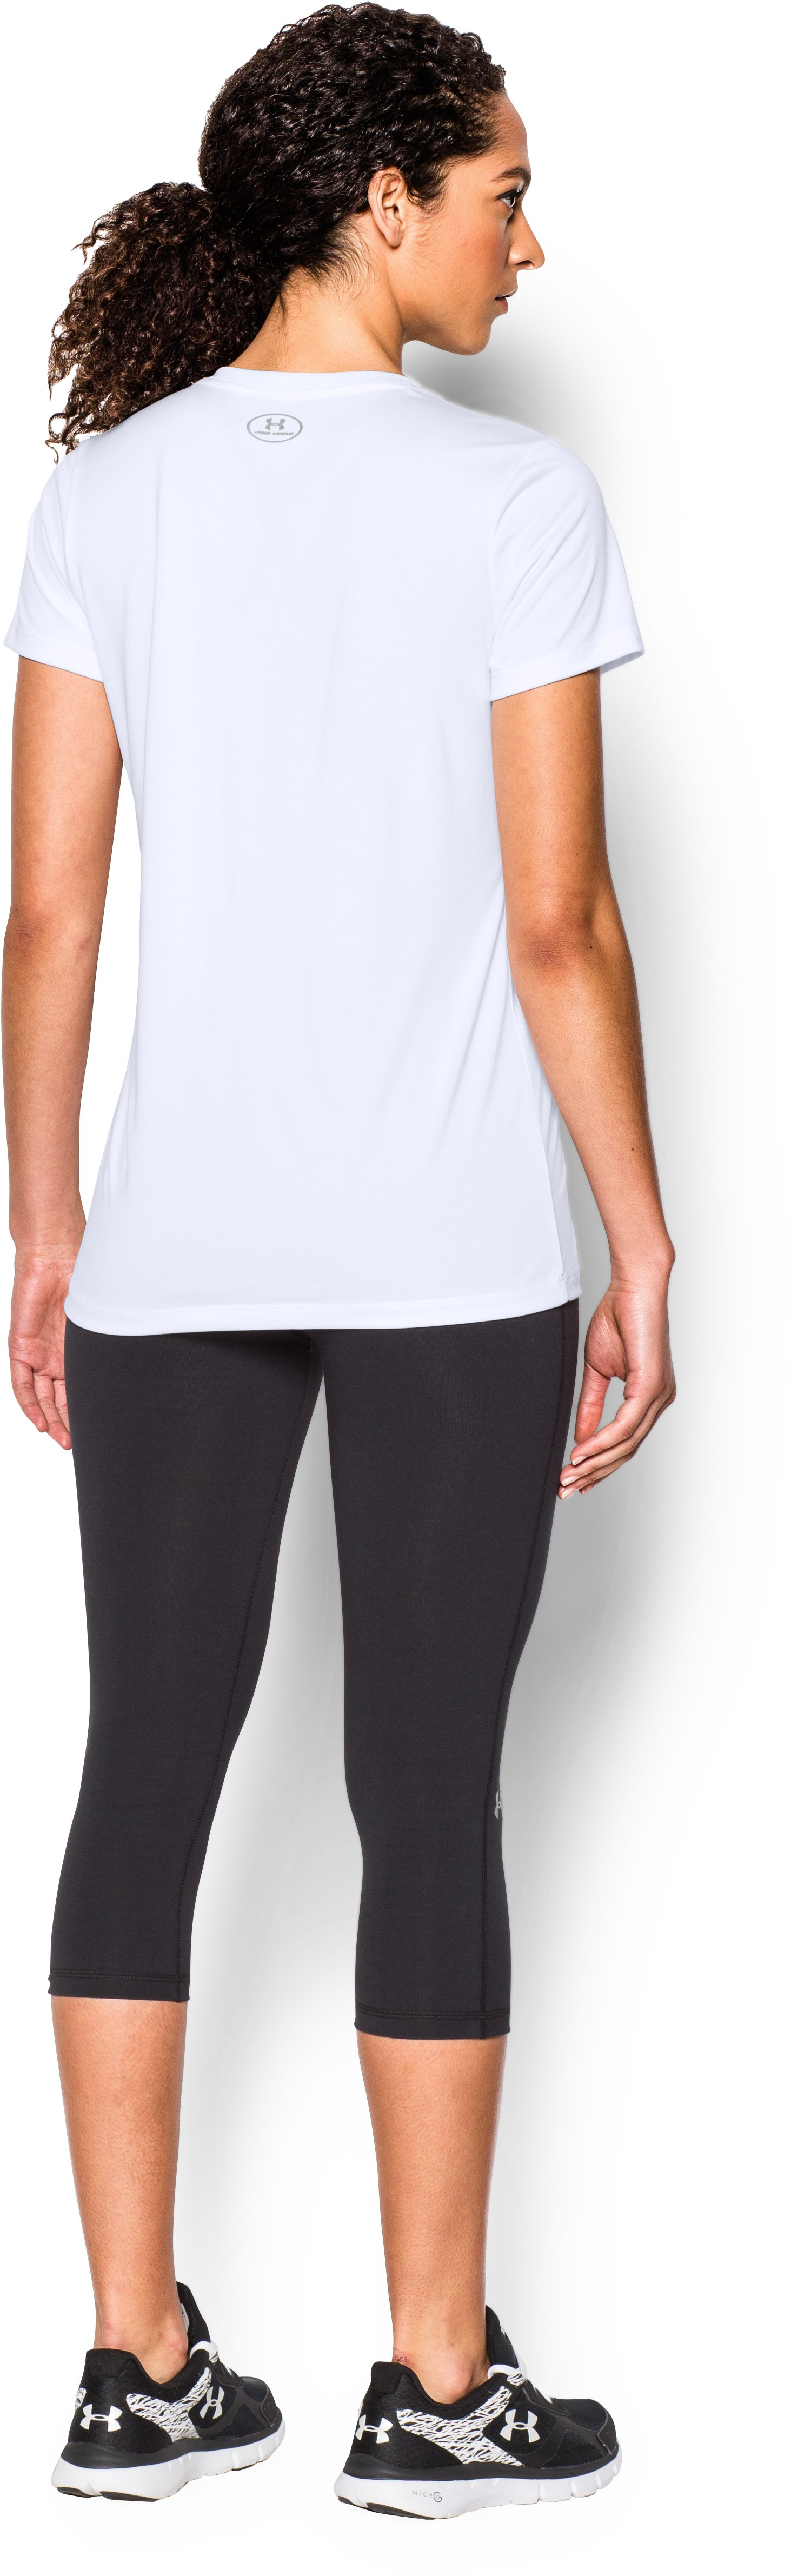 Women's UA Tech™ V-Neck - Branded, White, Back